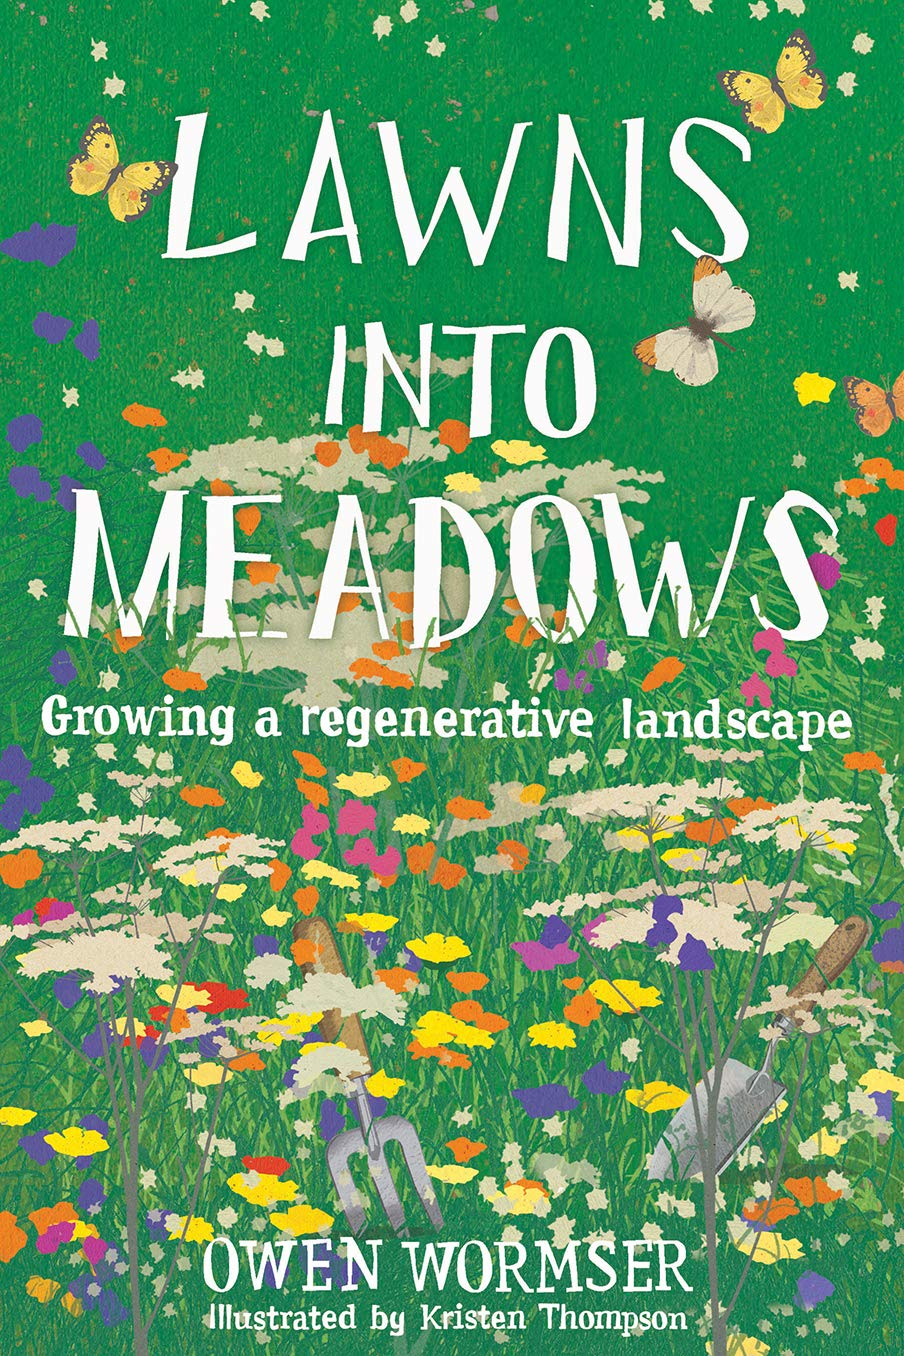 Lawns into Meadows: Growing a Regenerative Landscape